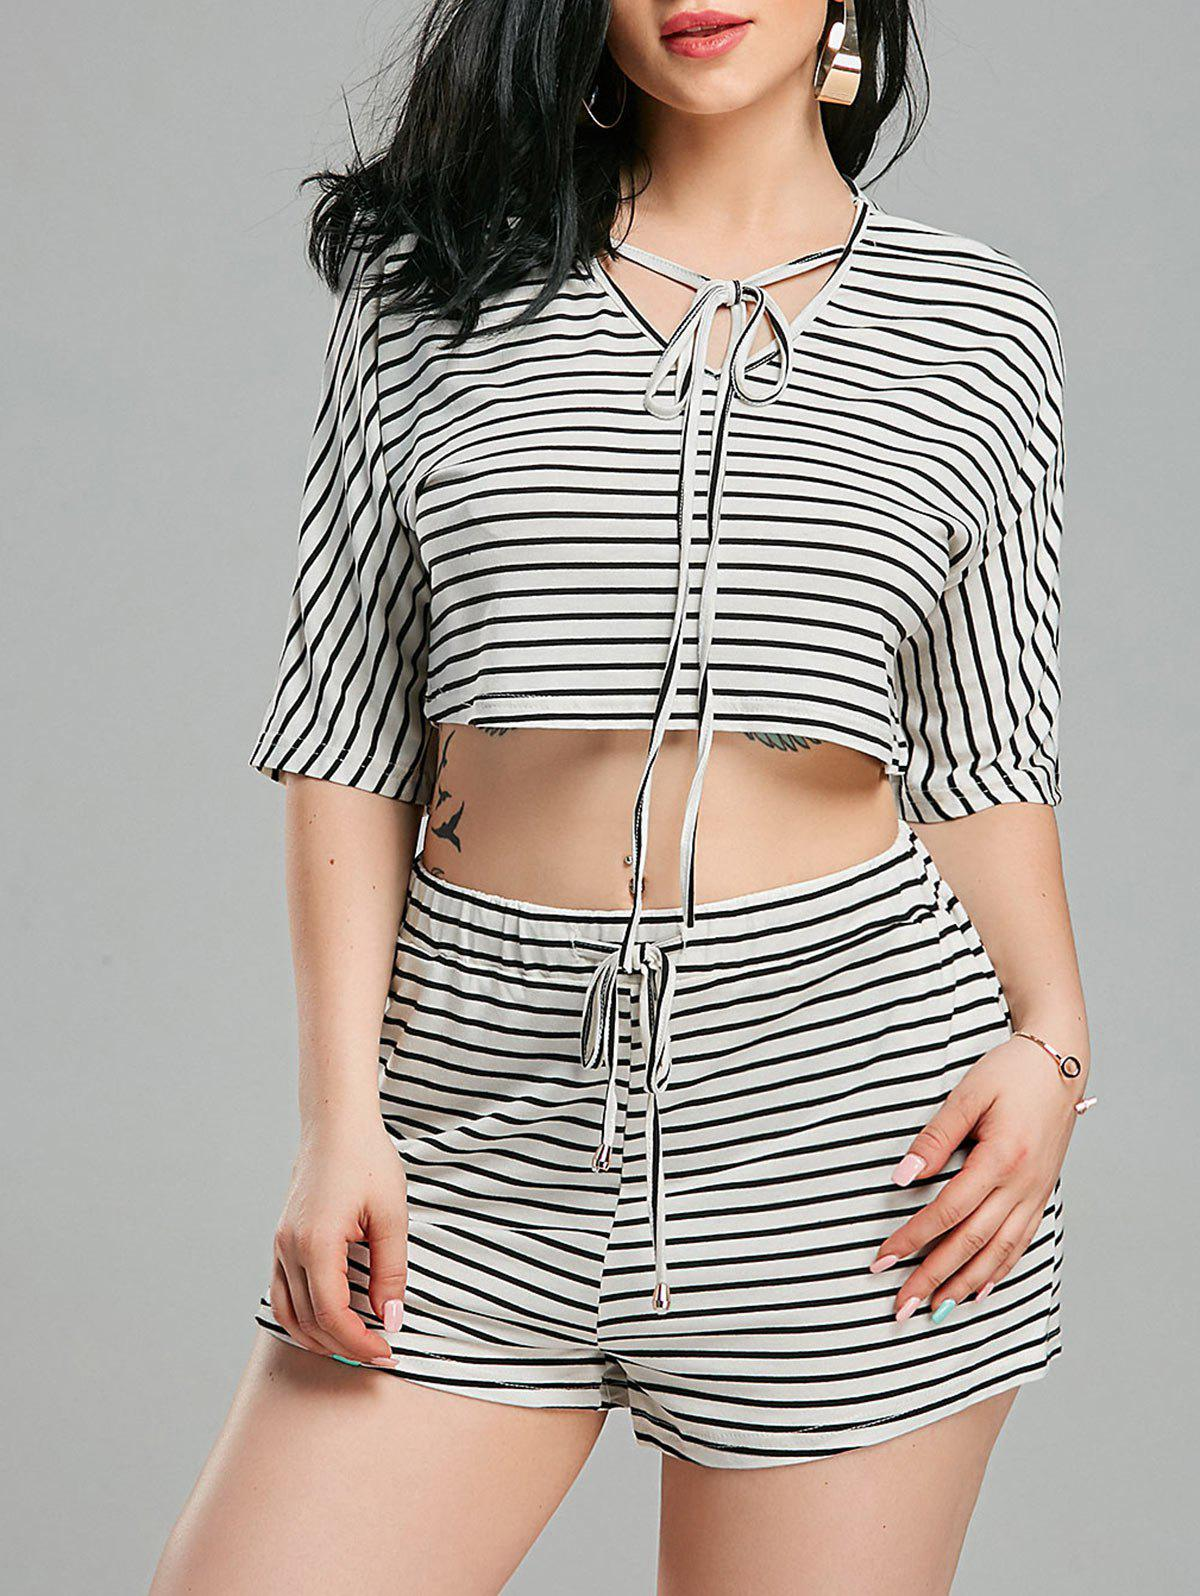 Lacing Striped V Neck Crop Top+Shorts - WHITE/BLACK M